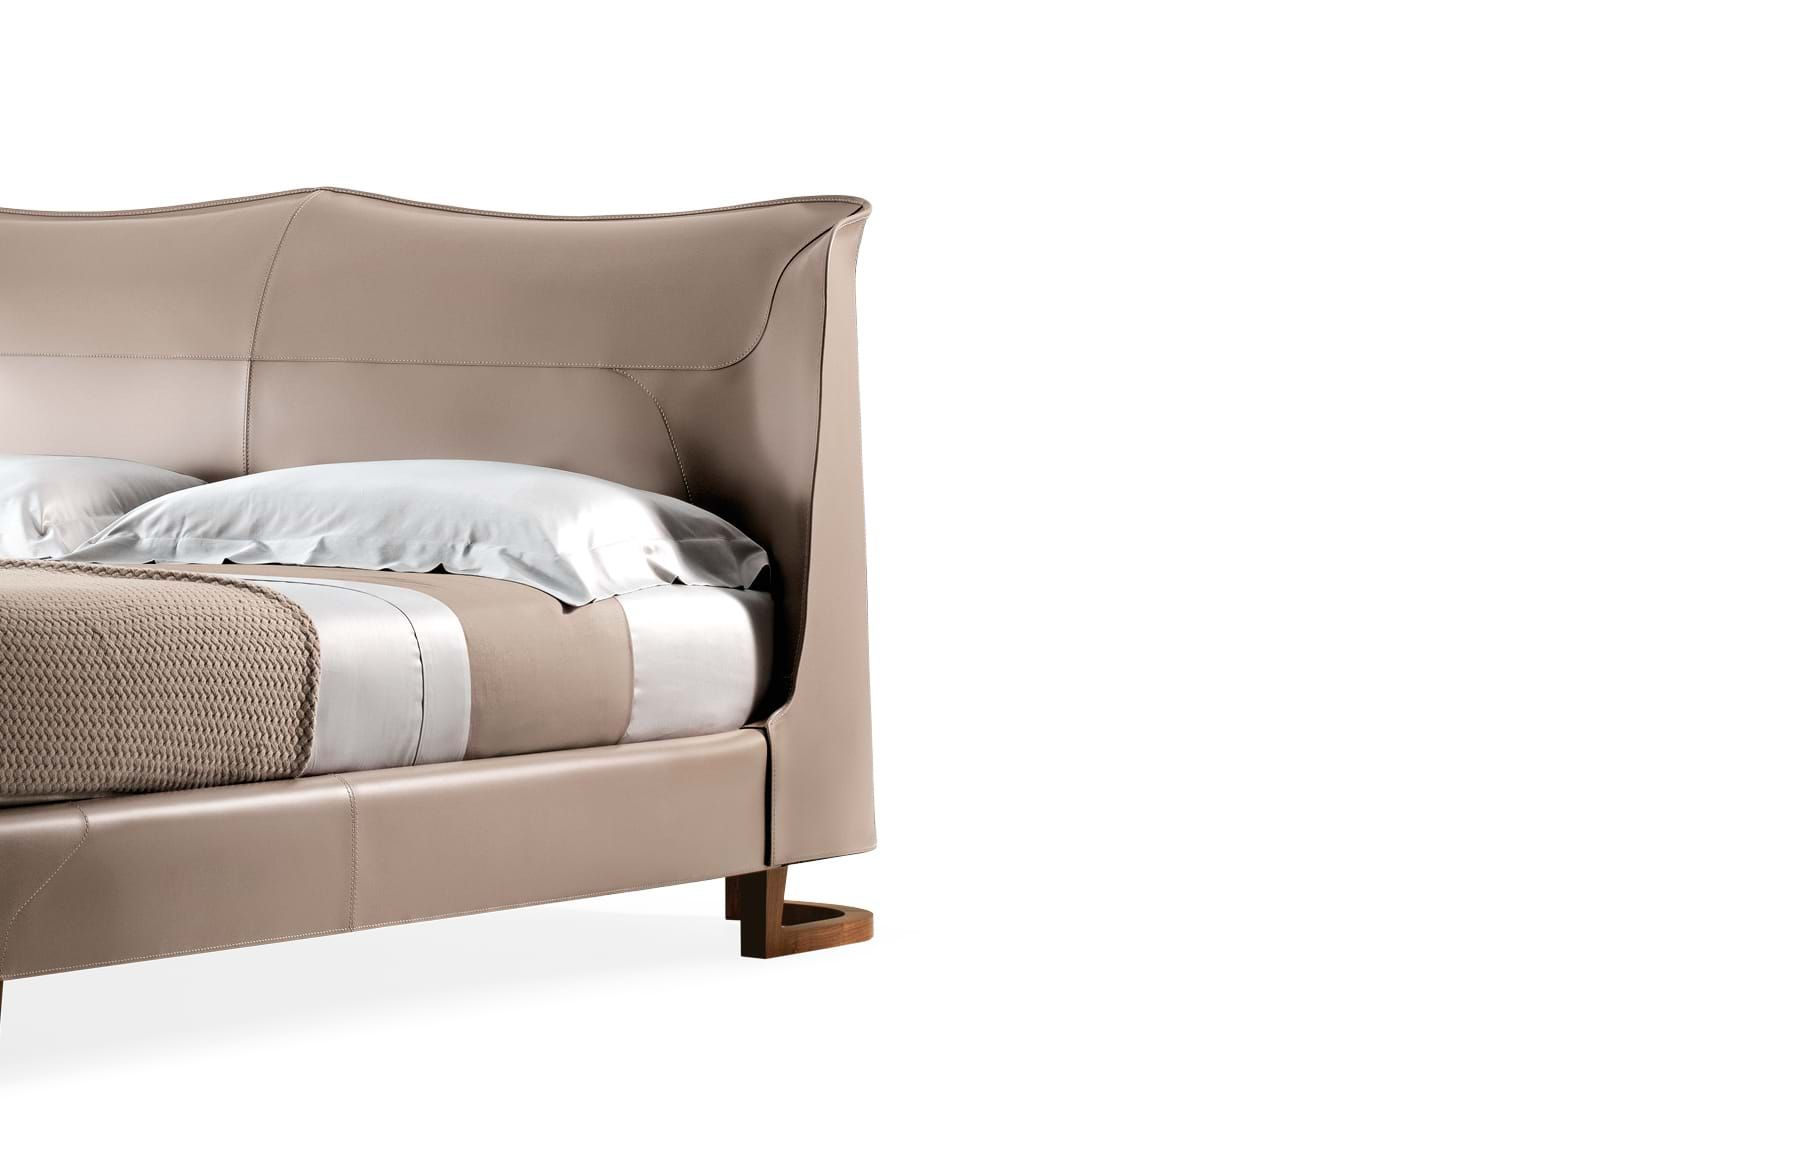 Double Bed Corium Beds and NightTables Bed design